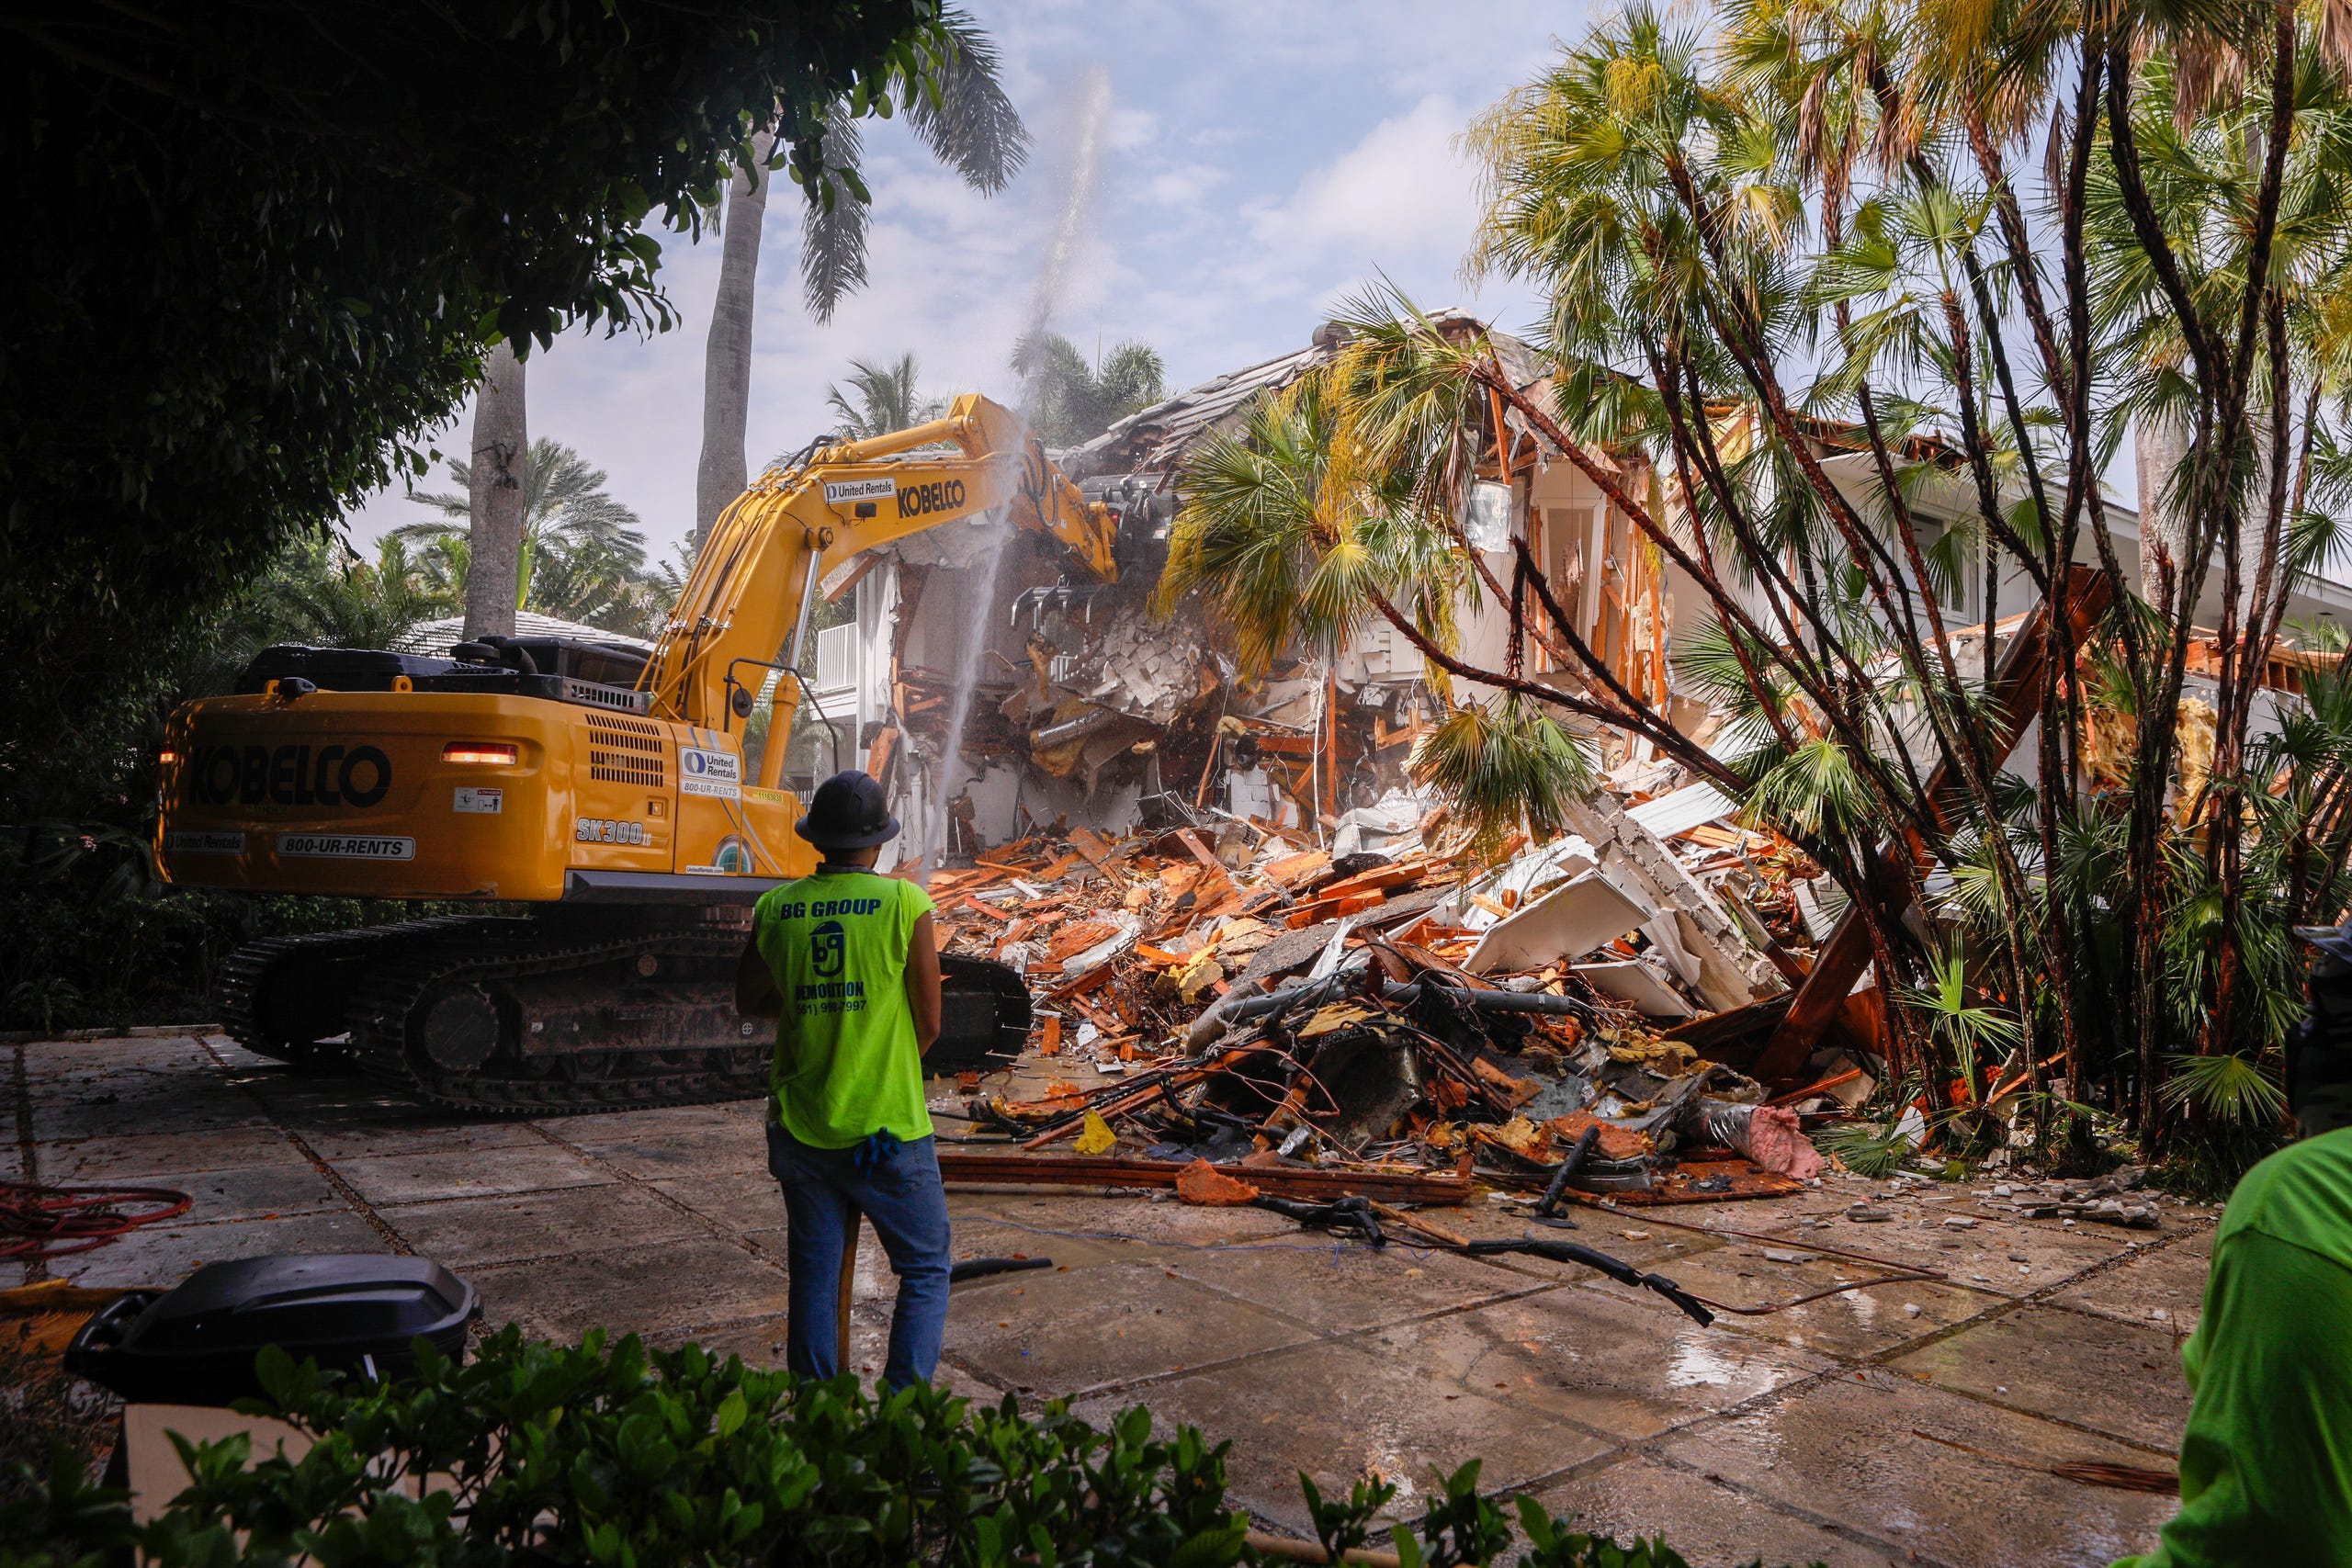 A crew from BG Group Demolition begins razing the Palm Beach home of late financier and sex offender Jeffrey Epstein, April 19, 2021.